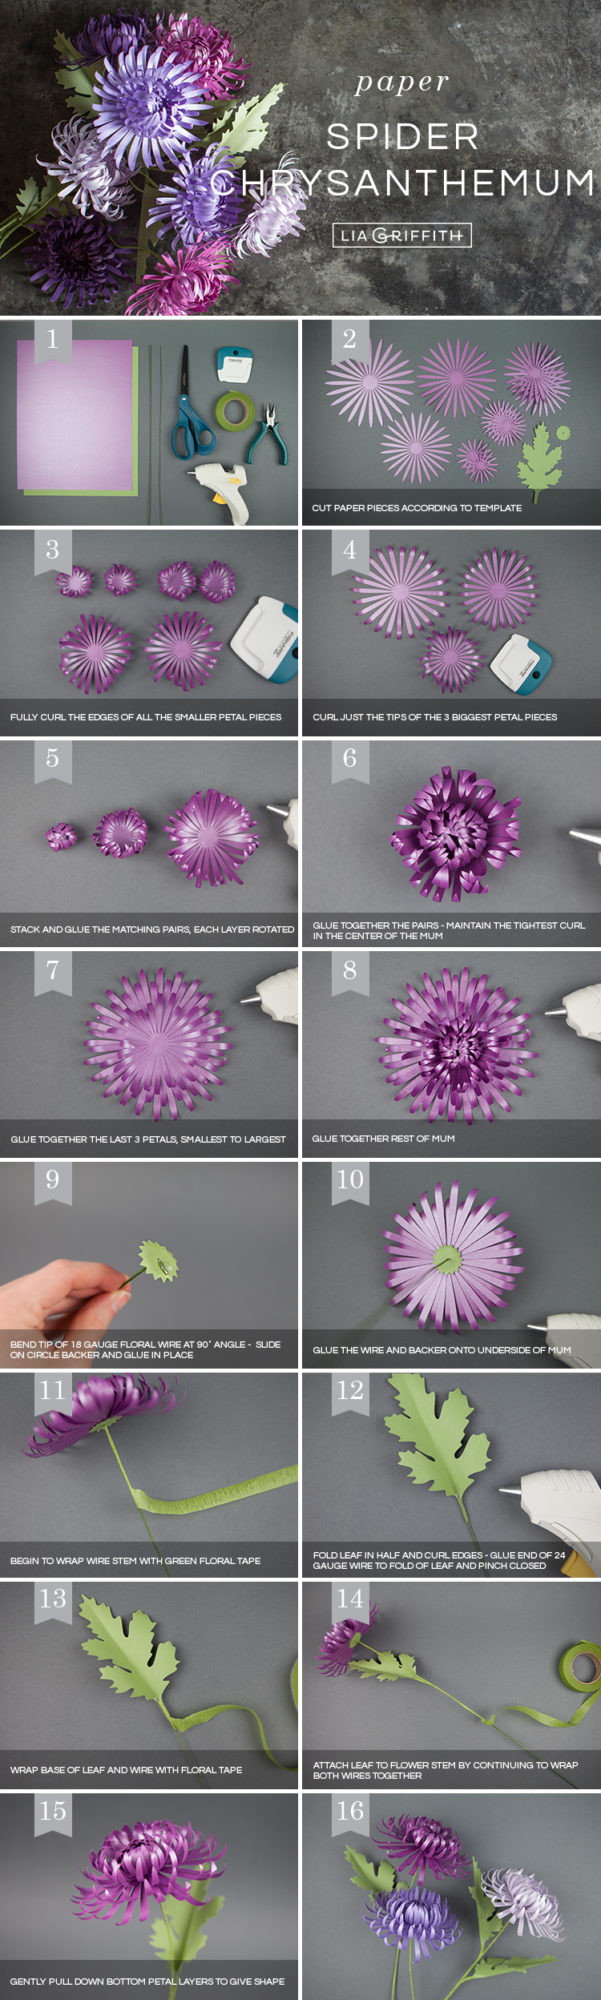 Photo tutorial for paper spider chrysanthemums by Lia Griffith